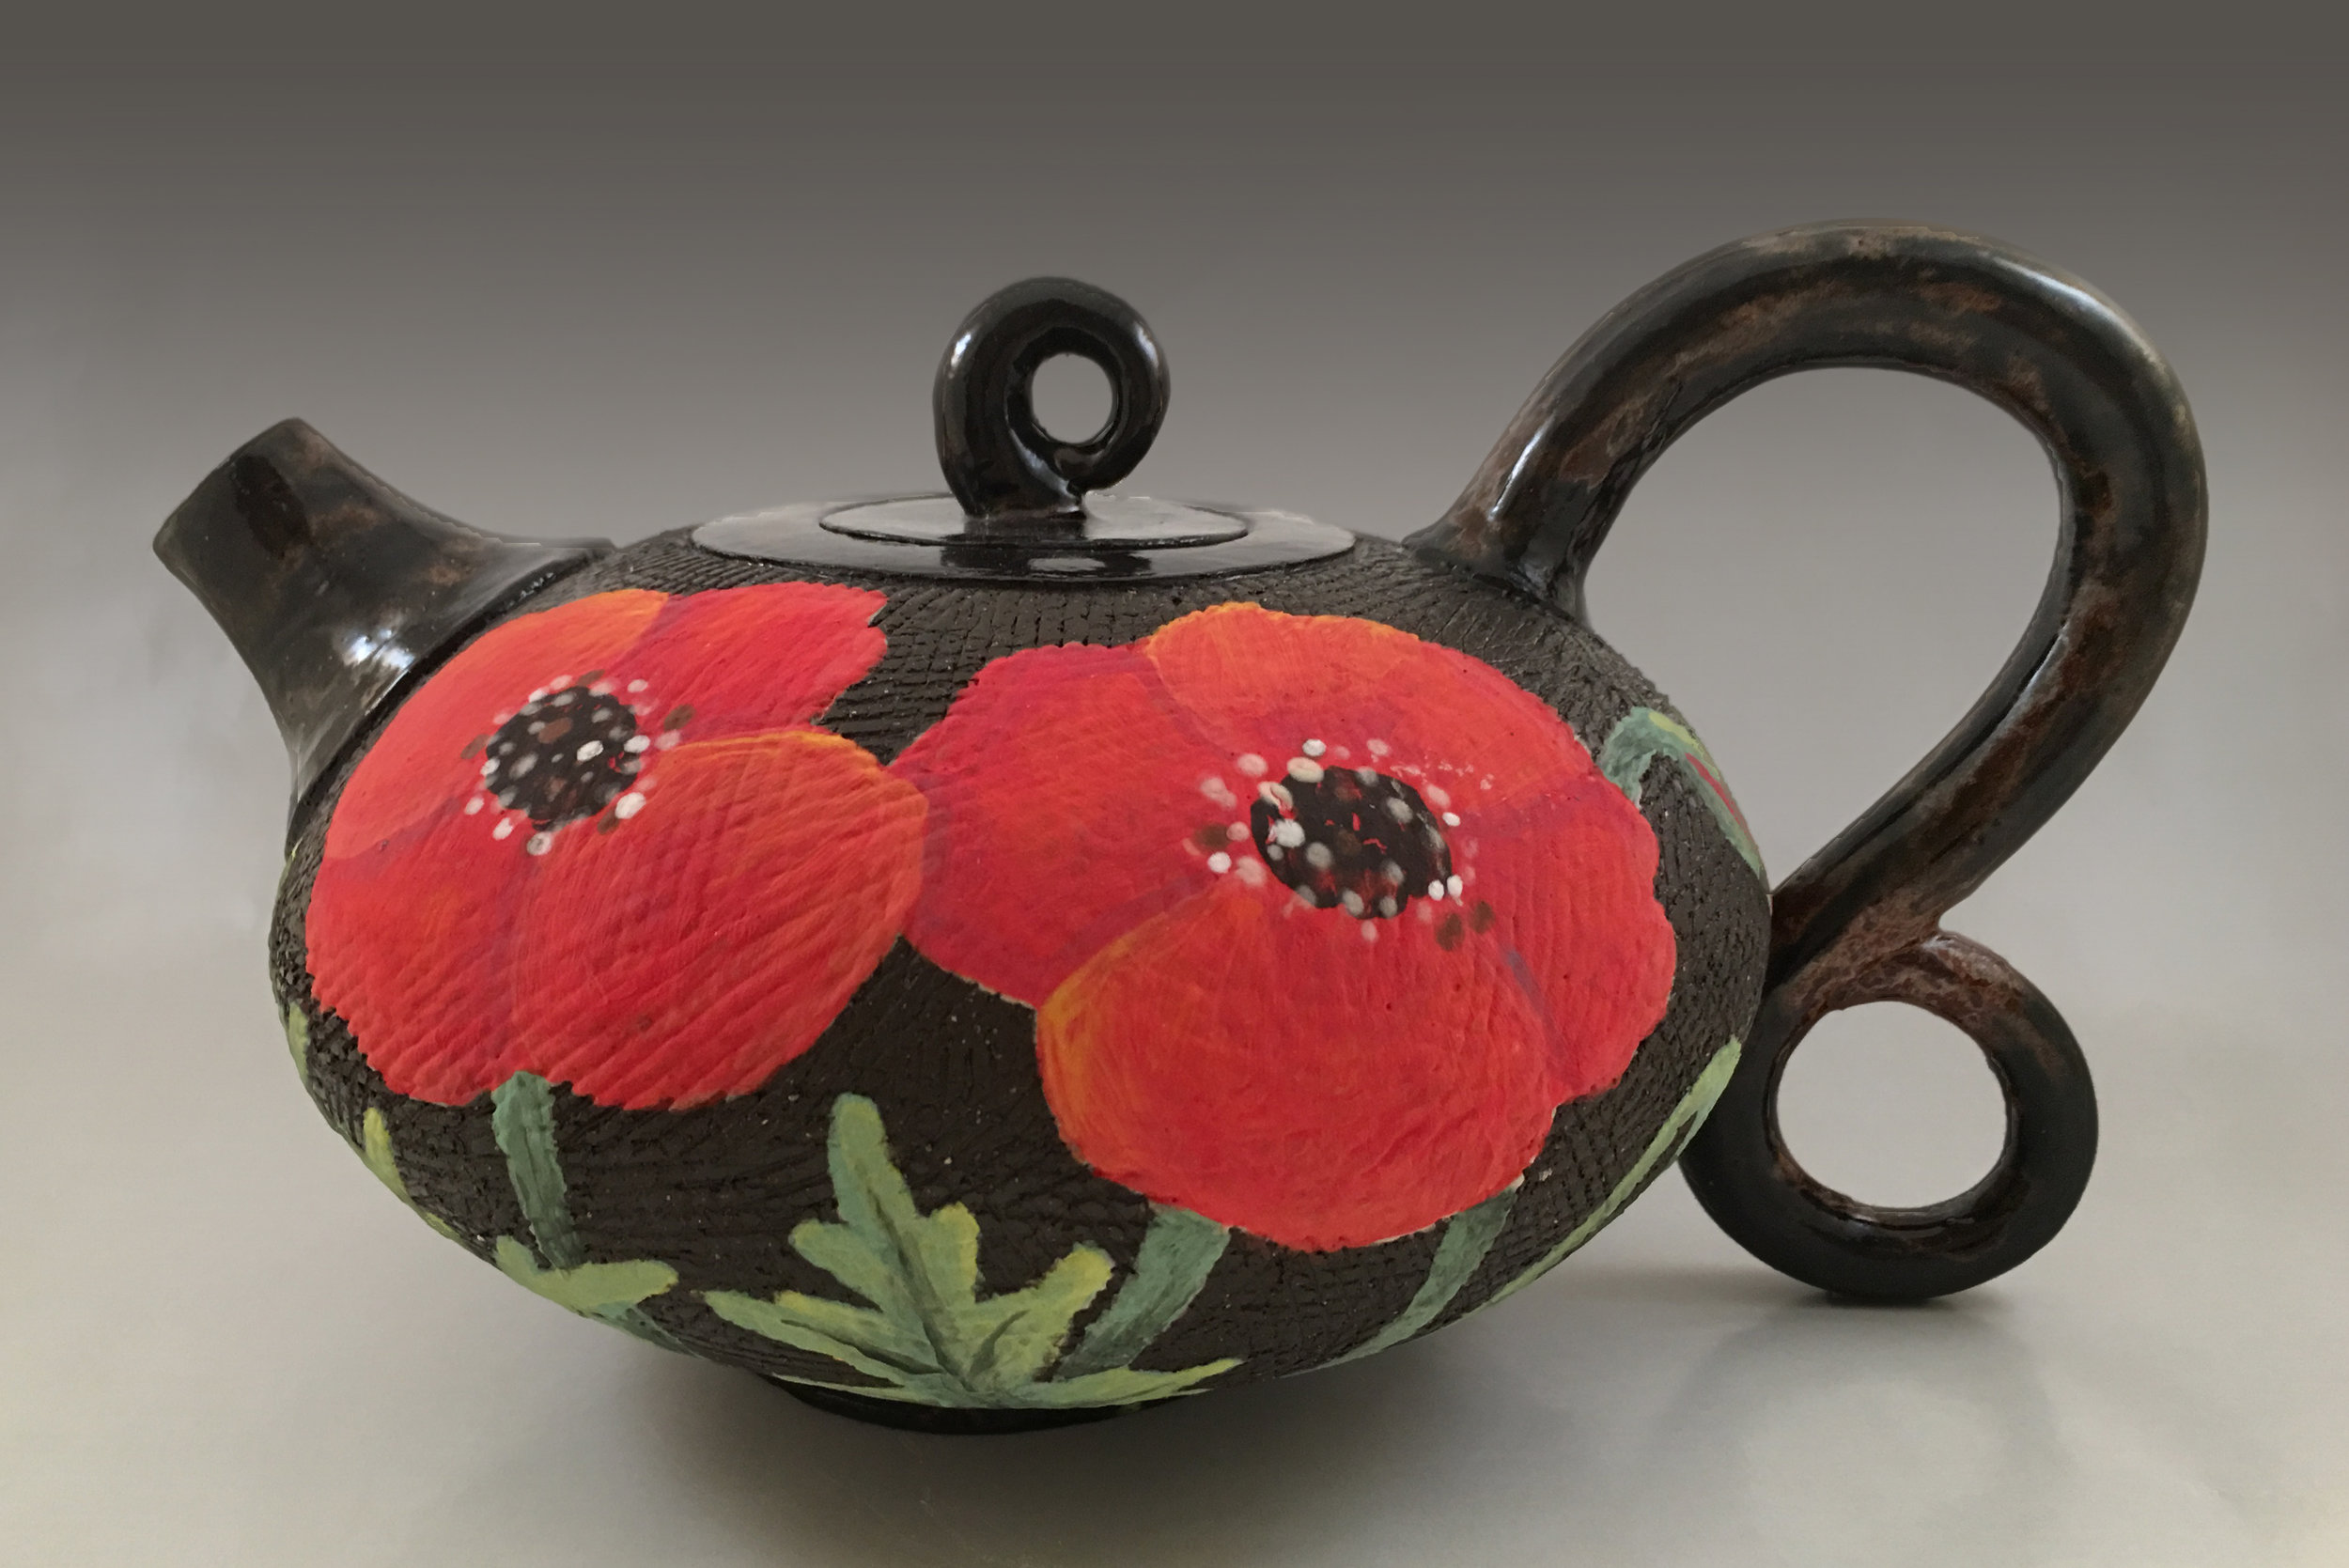 Teapot with Poppy Flowers